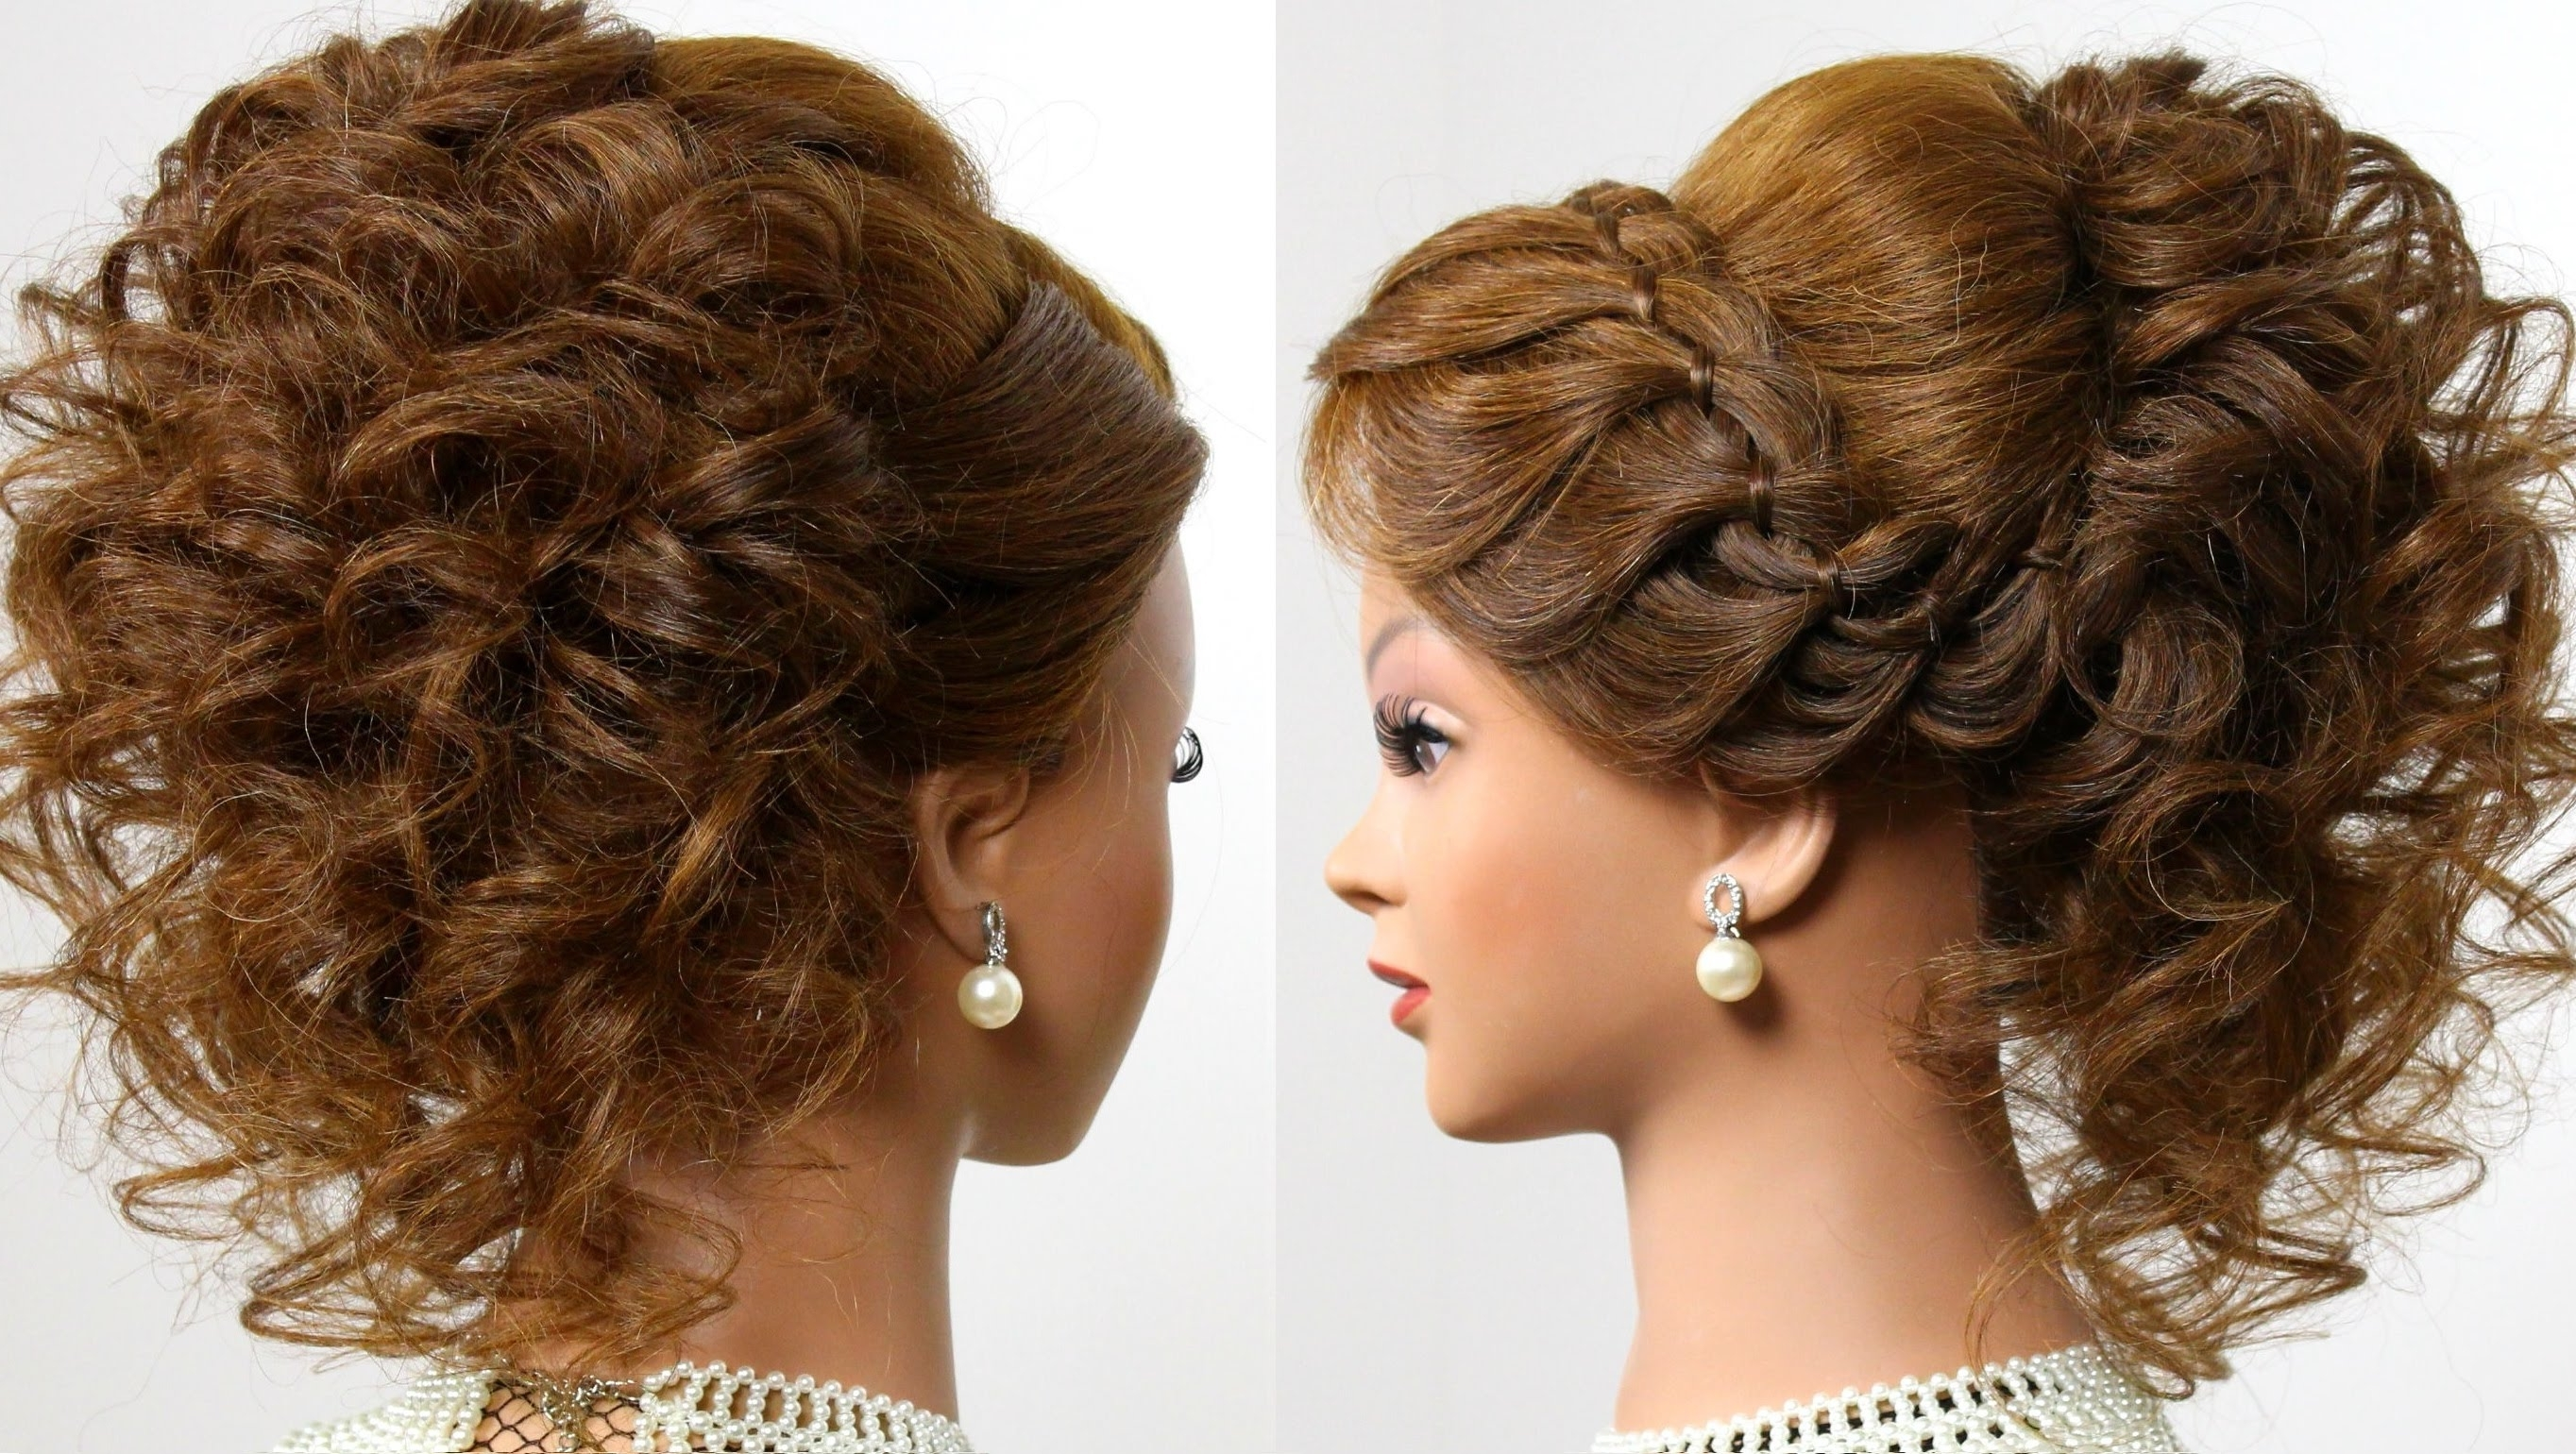 Curly Wedding Prom Hairstyle For Long Hair Sensational Romantic In Medium Long Hair Updo Hairstyles (View 4 of 15)